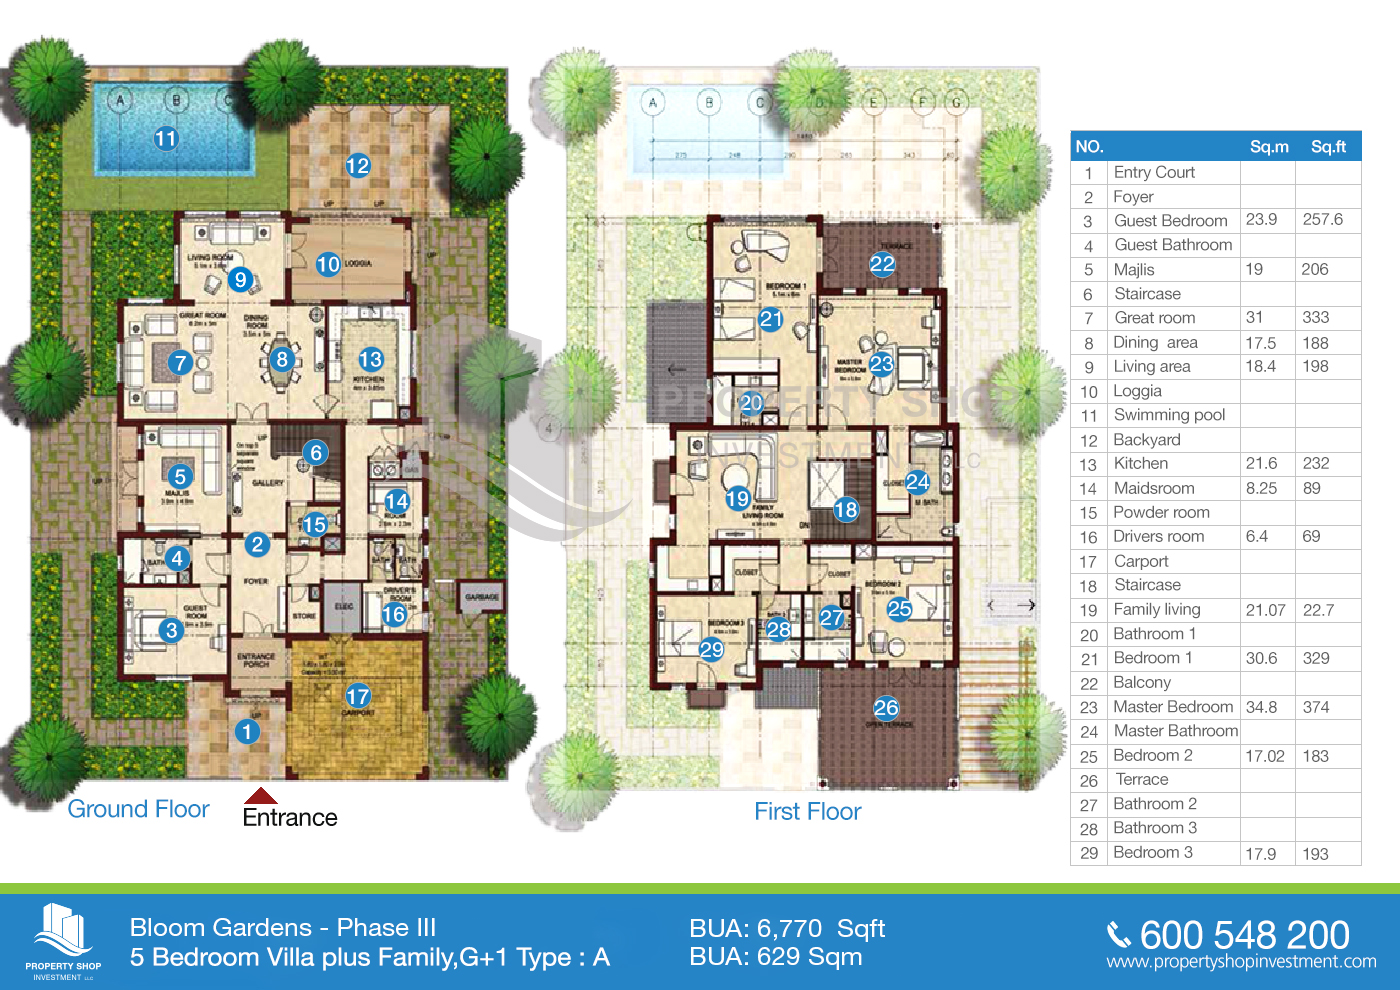 phase iii floor plans of bloom gardens